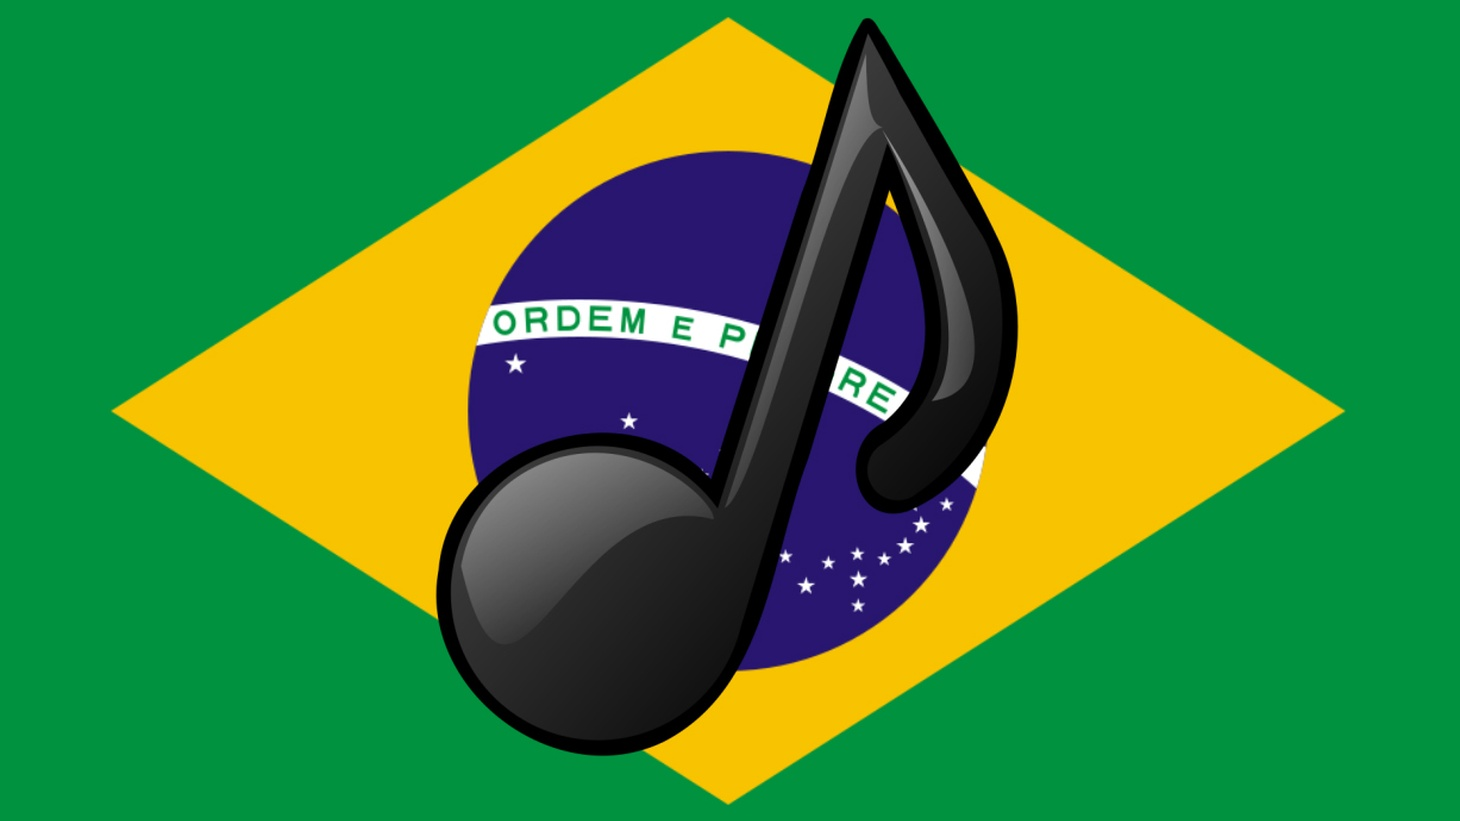 Rhythm Planet host Tom Schnabel stops by at 10am to share some Brazilian music in homage to the Olympic events in Rio.